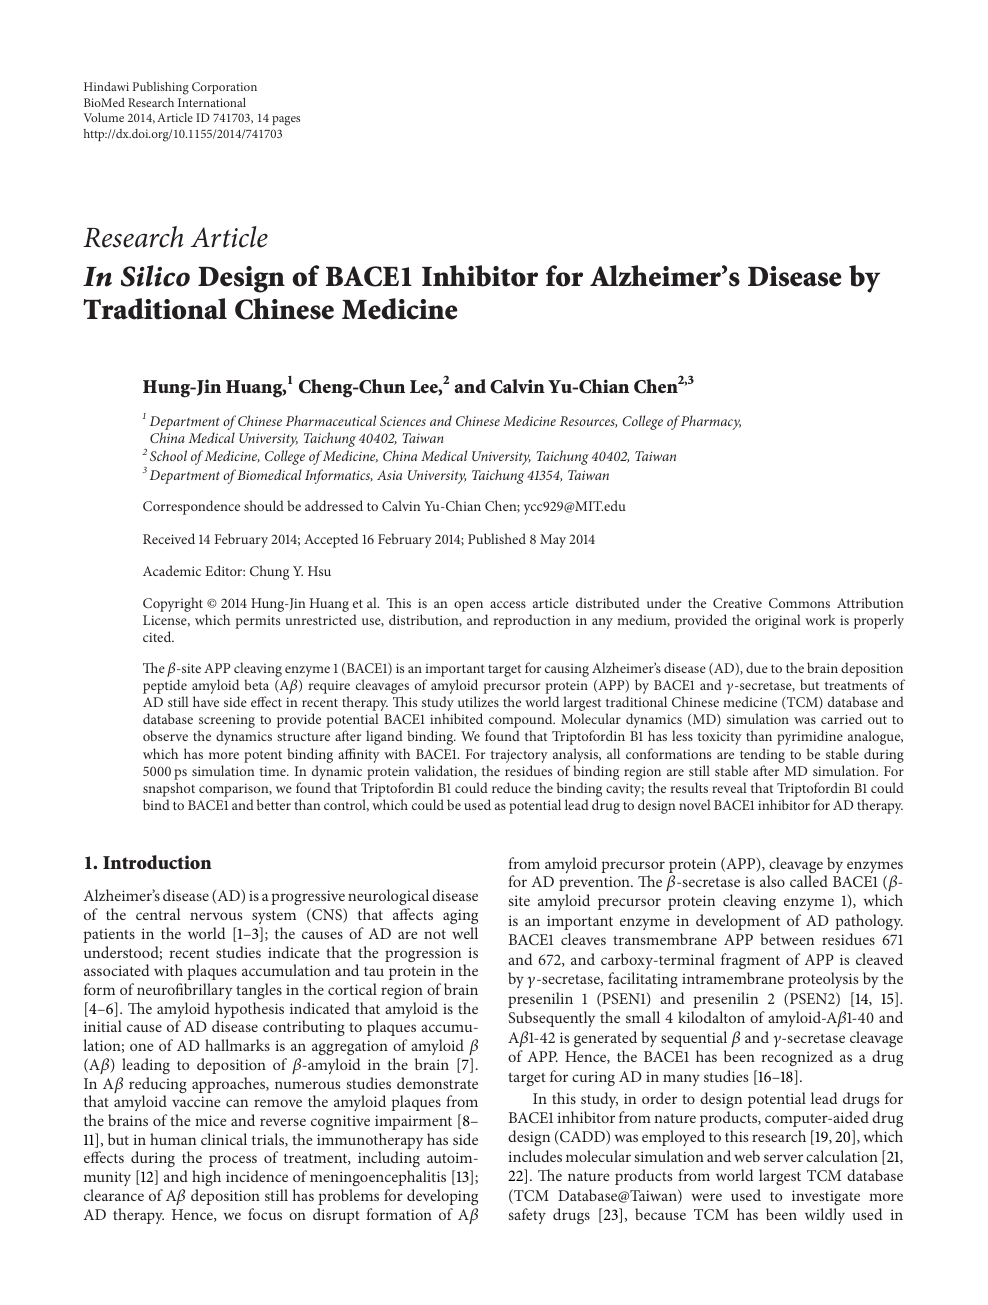 004 Alzheimers Disease Research Paper Topic Archaicawful Alzheimer's Topics Ideas Full